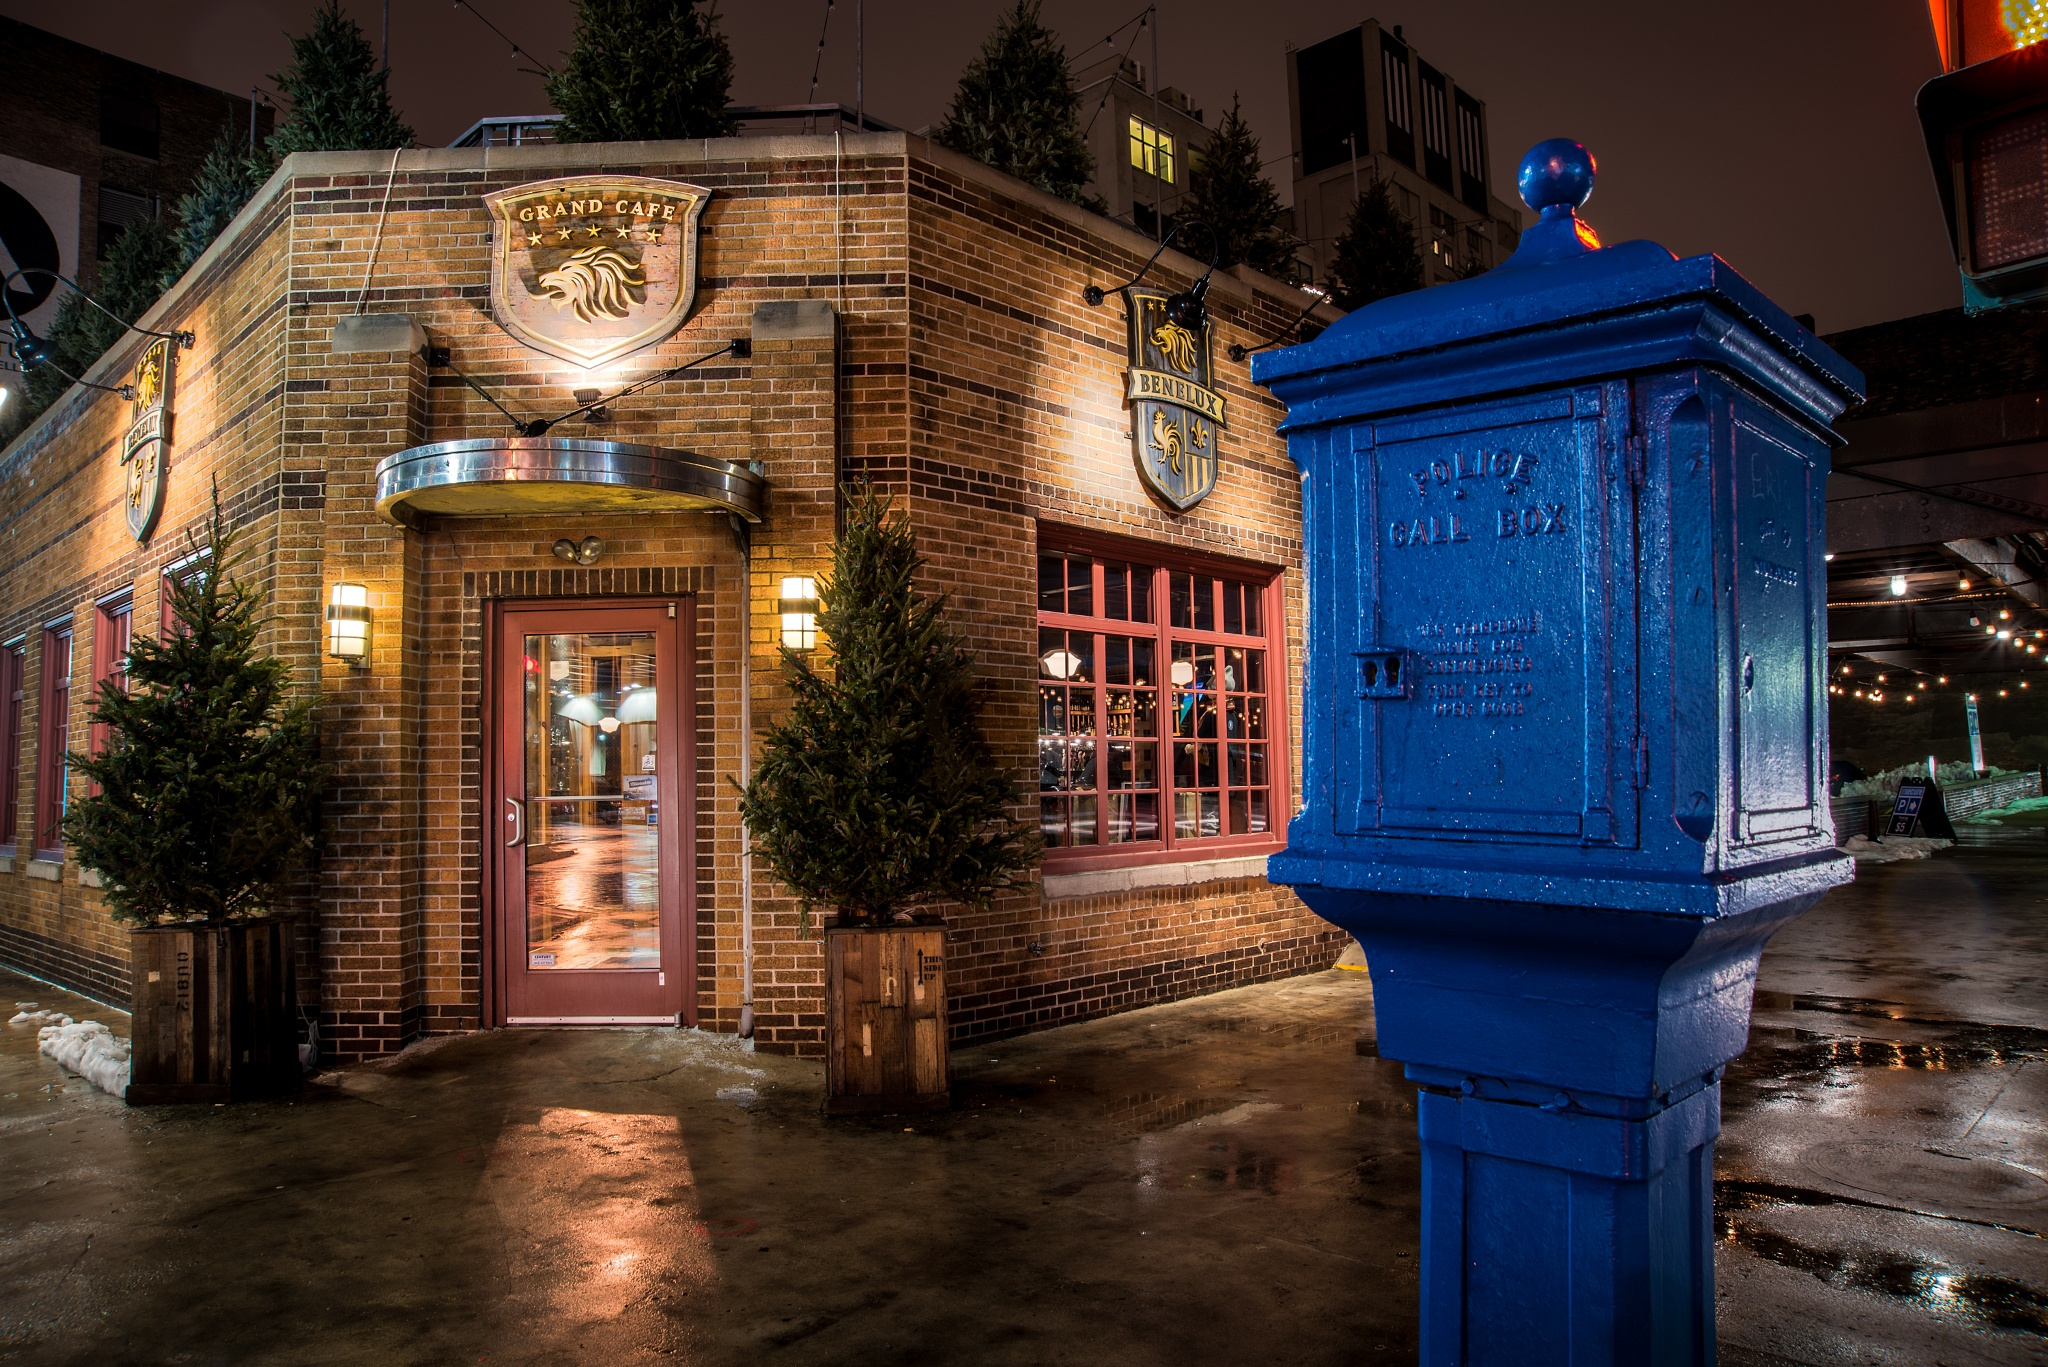 Photo in Cityscape #architecture #artistic #bar/restaurant #blue #building #buildings #city #cityscape #color #door #doors #fog #rain #long exposure #milwaukee #misty #night #night photography #nightscape #nikon #old #outdoor #red #signs #street #texture #textured #urban #usa #weather #winter #wisconsin